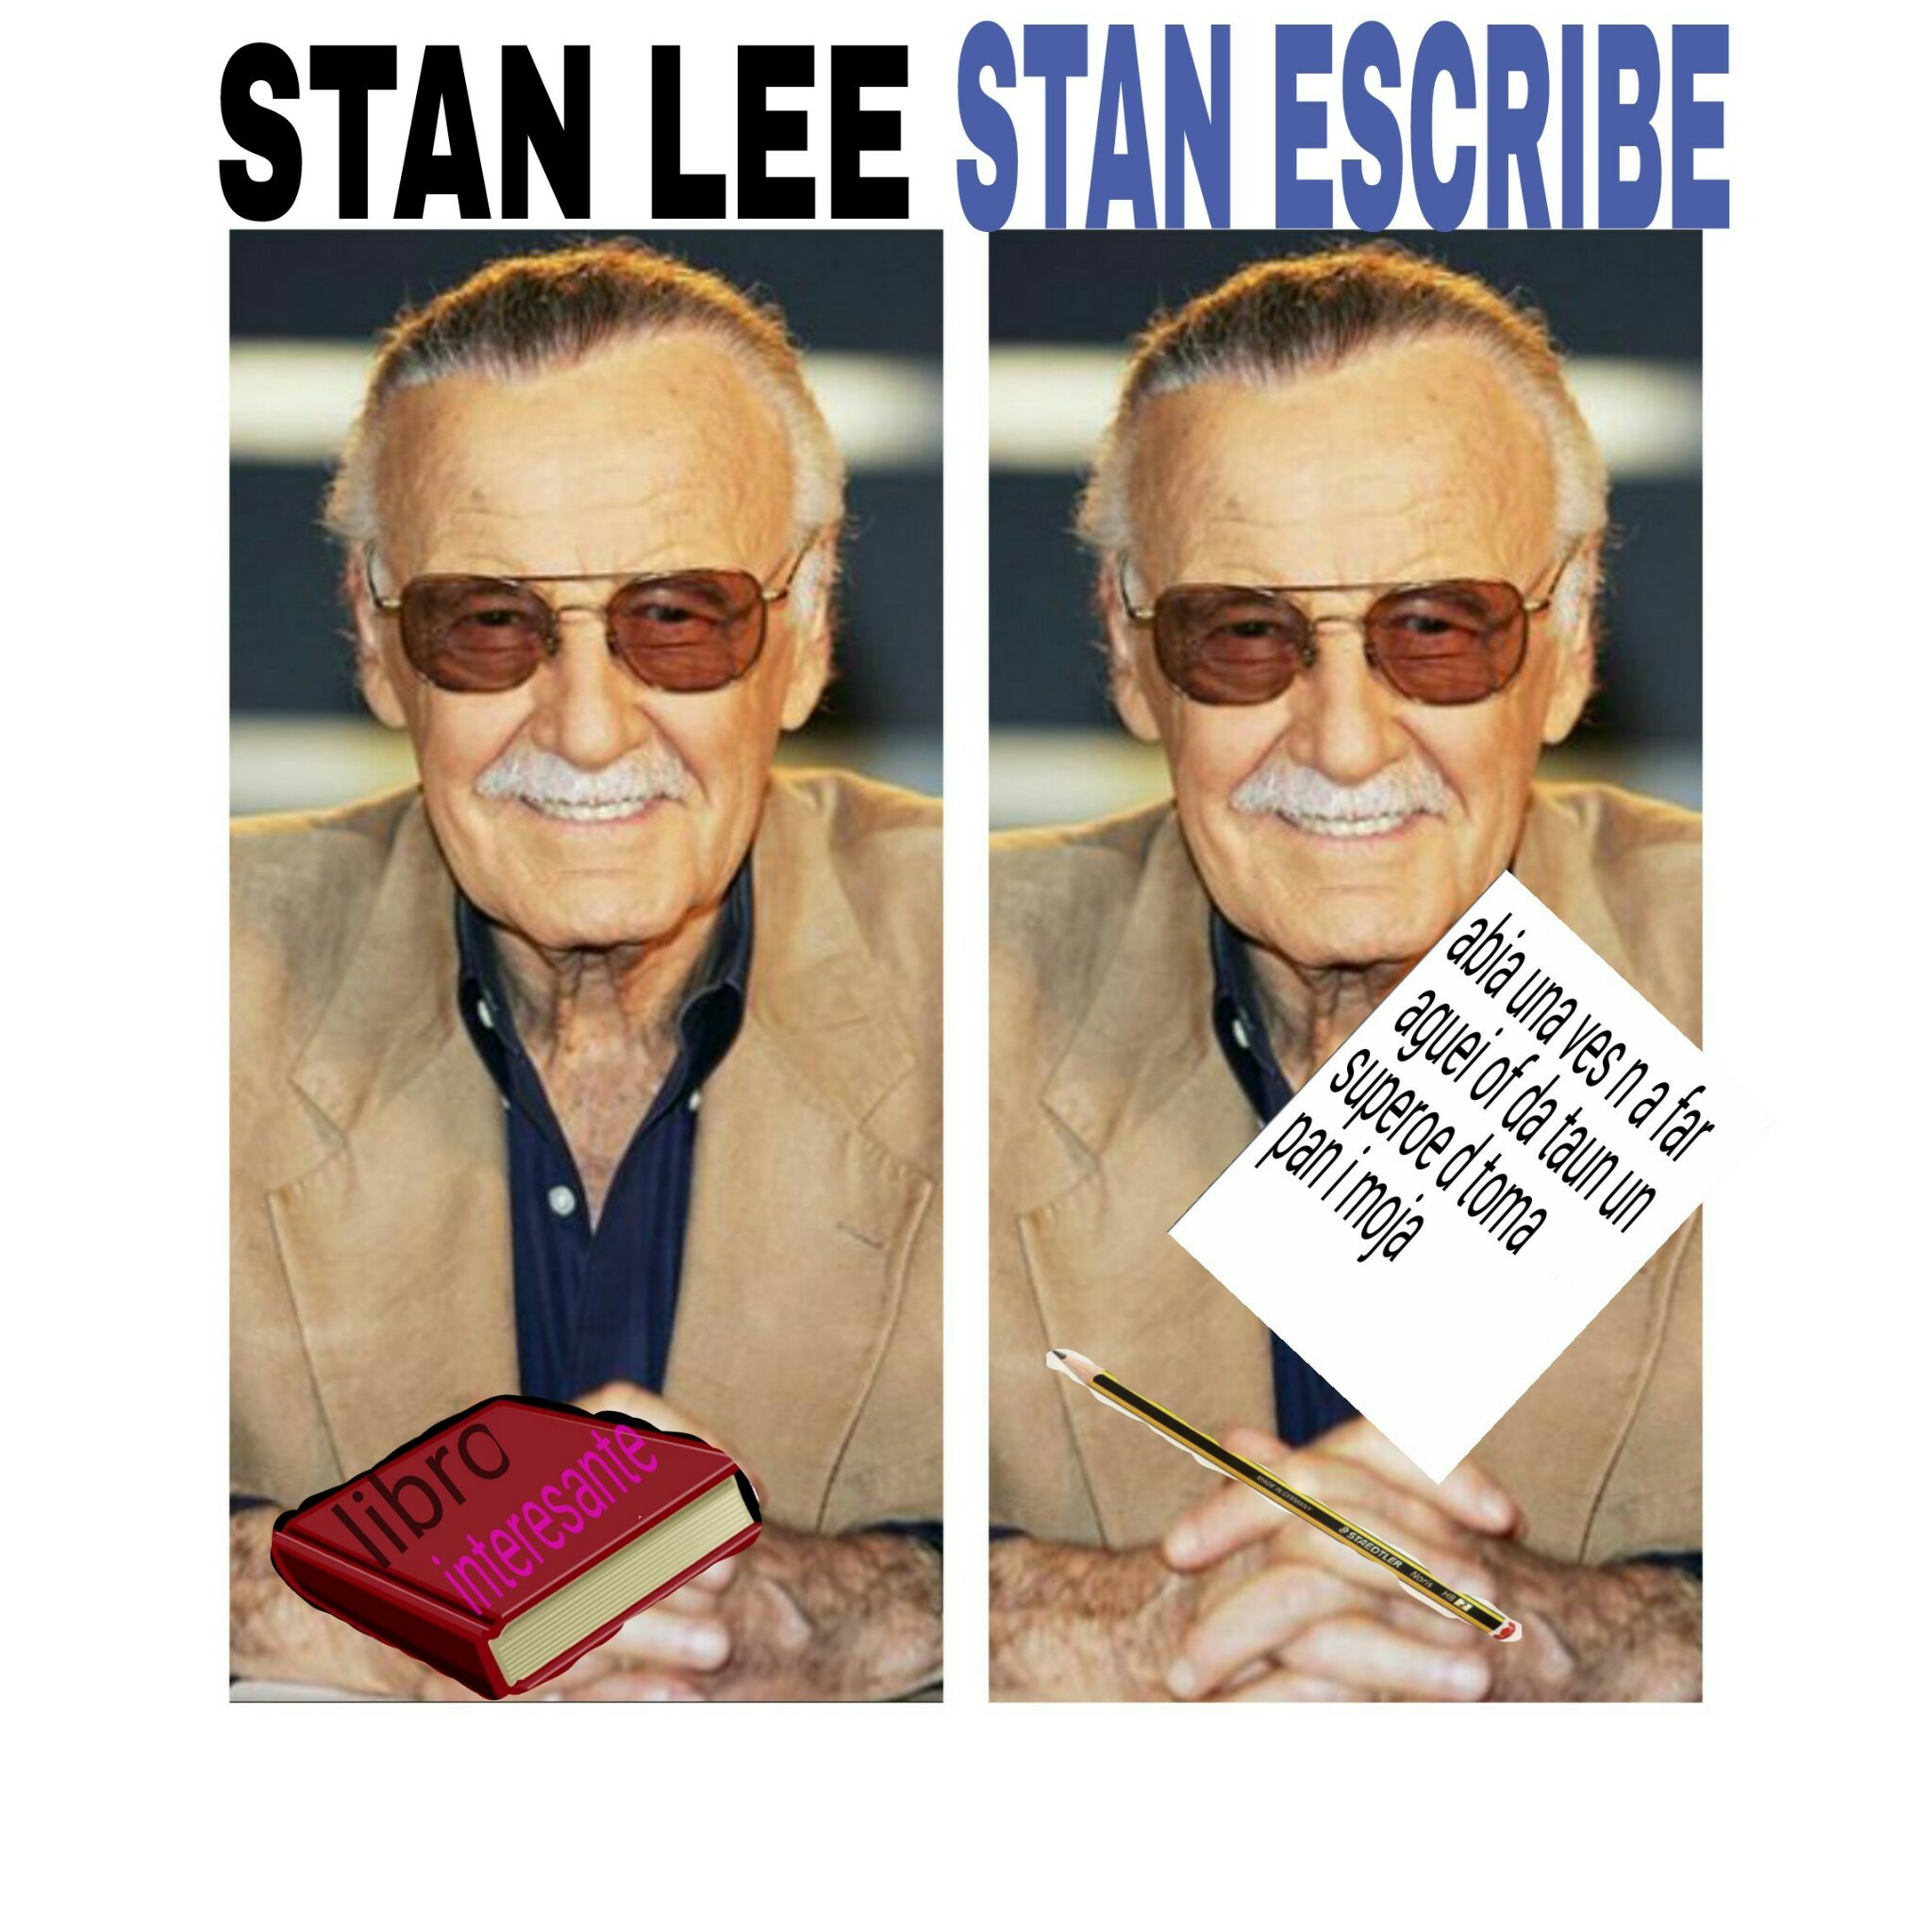 stan lee (no me lo copien!!) - meme